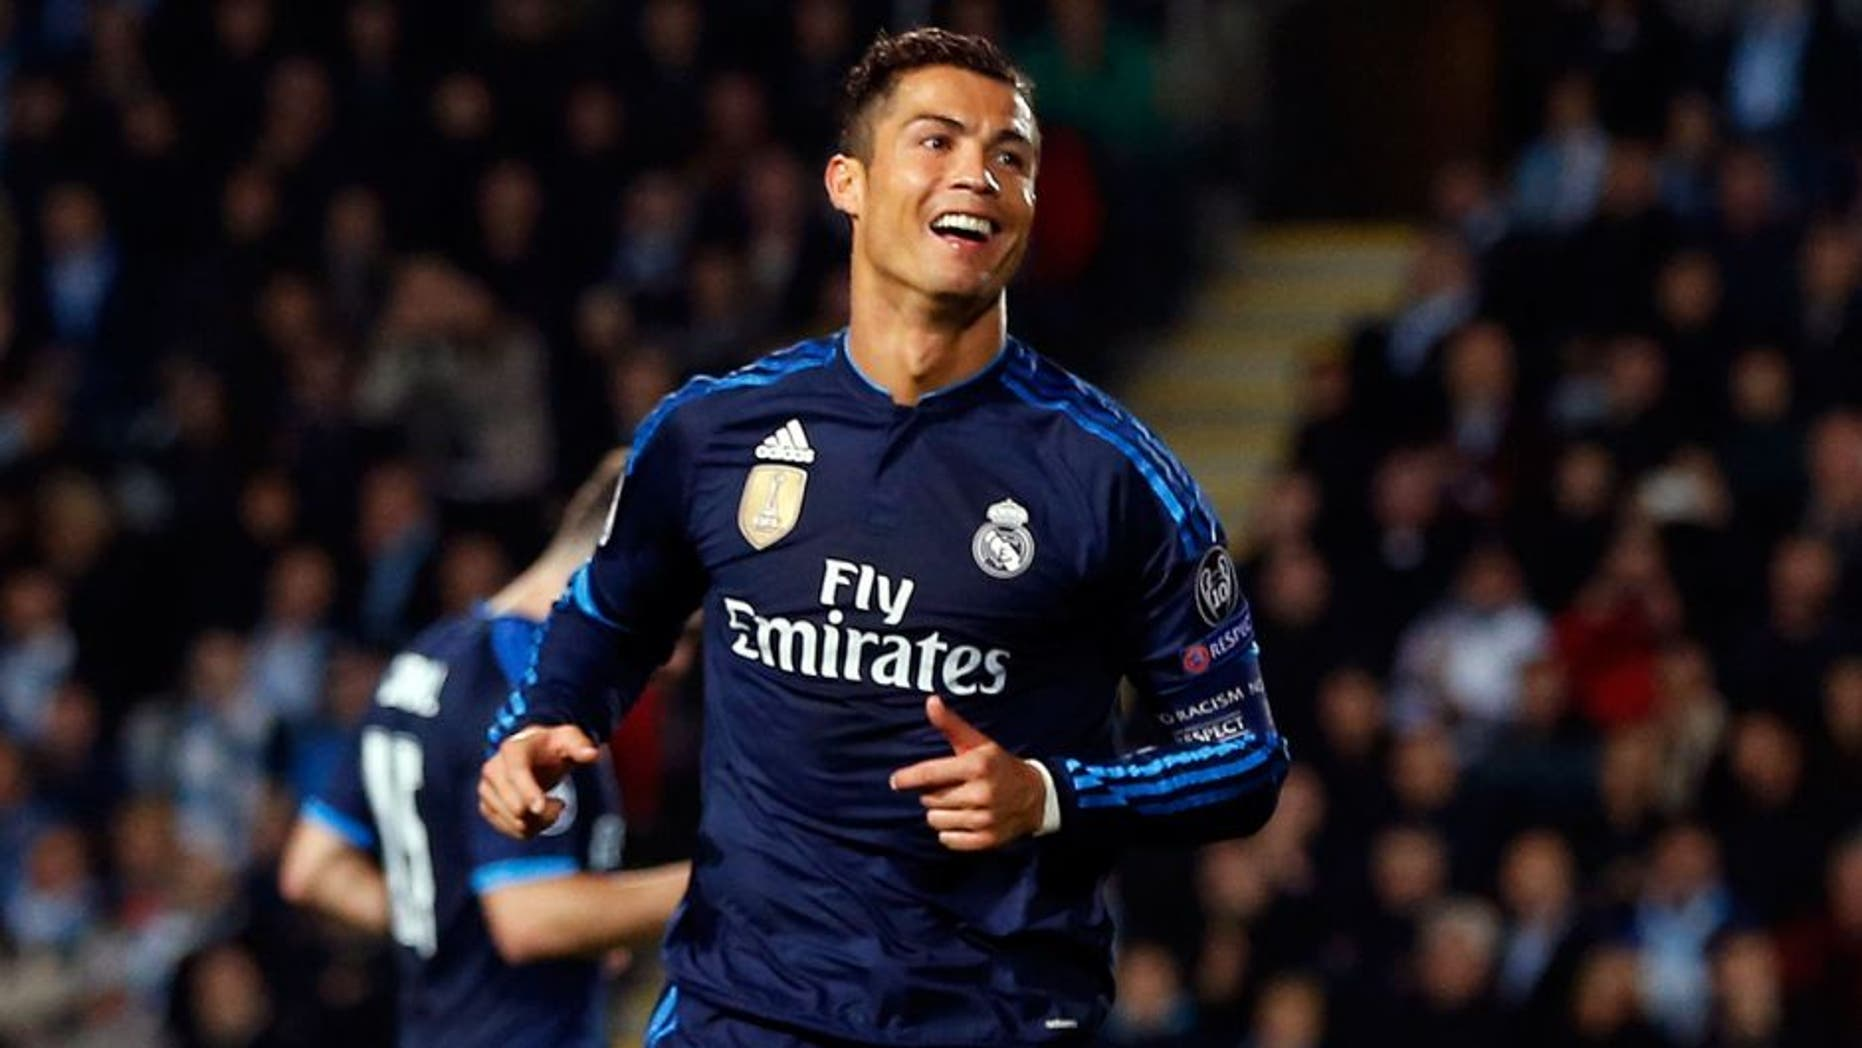 MALMO, SWEDEN - SEPTEMBER 30: Cristiano Ronaldo of Real Madrid celebrates after scoring during the UEFA Champions League Group A match between Malmö FF and Real Madrid CF at Swedbank Stadion on September 30, 2015 in Malmo, Sweden. (Photo by Antonio Villalba/Real Madrid via Getty Images)